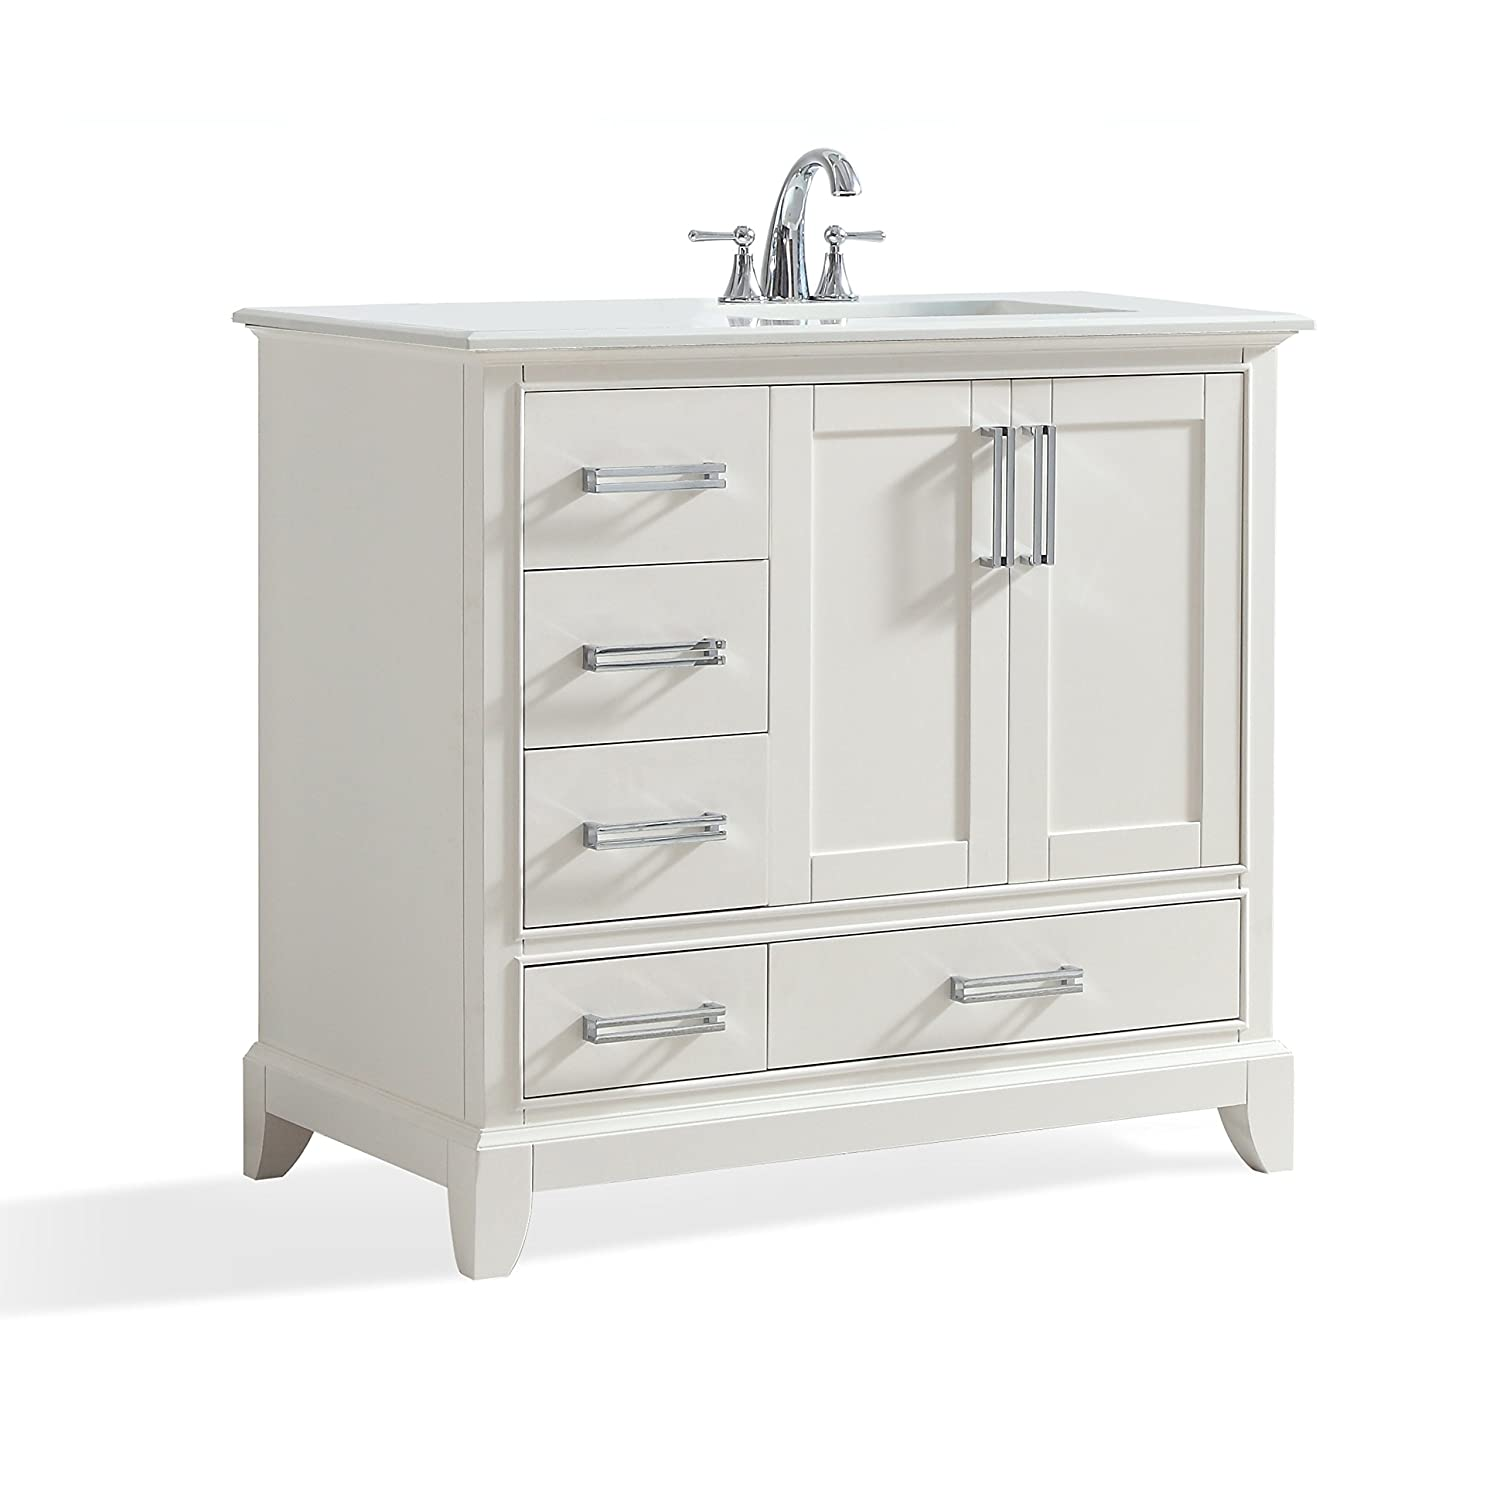 Simpli Home AXCVGNW-36R Elise 36 inch Traditional Bath Vanity in Soft White with Bombay White Engineered Quartz Marble Top